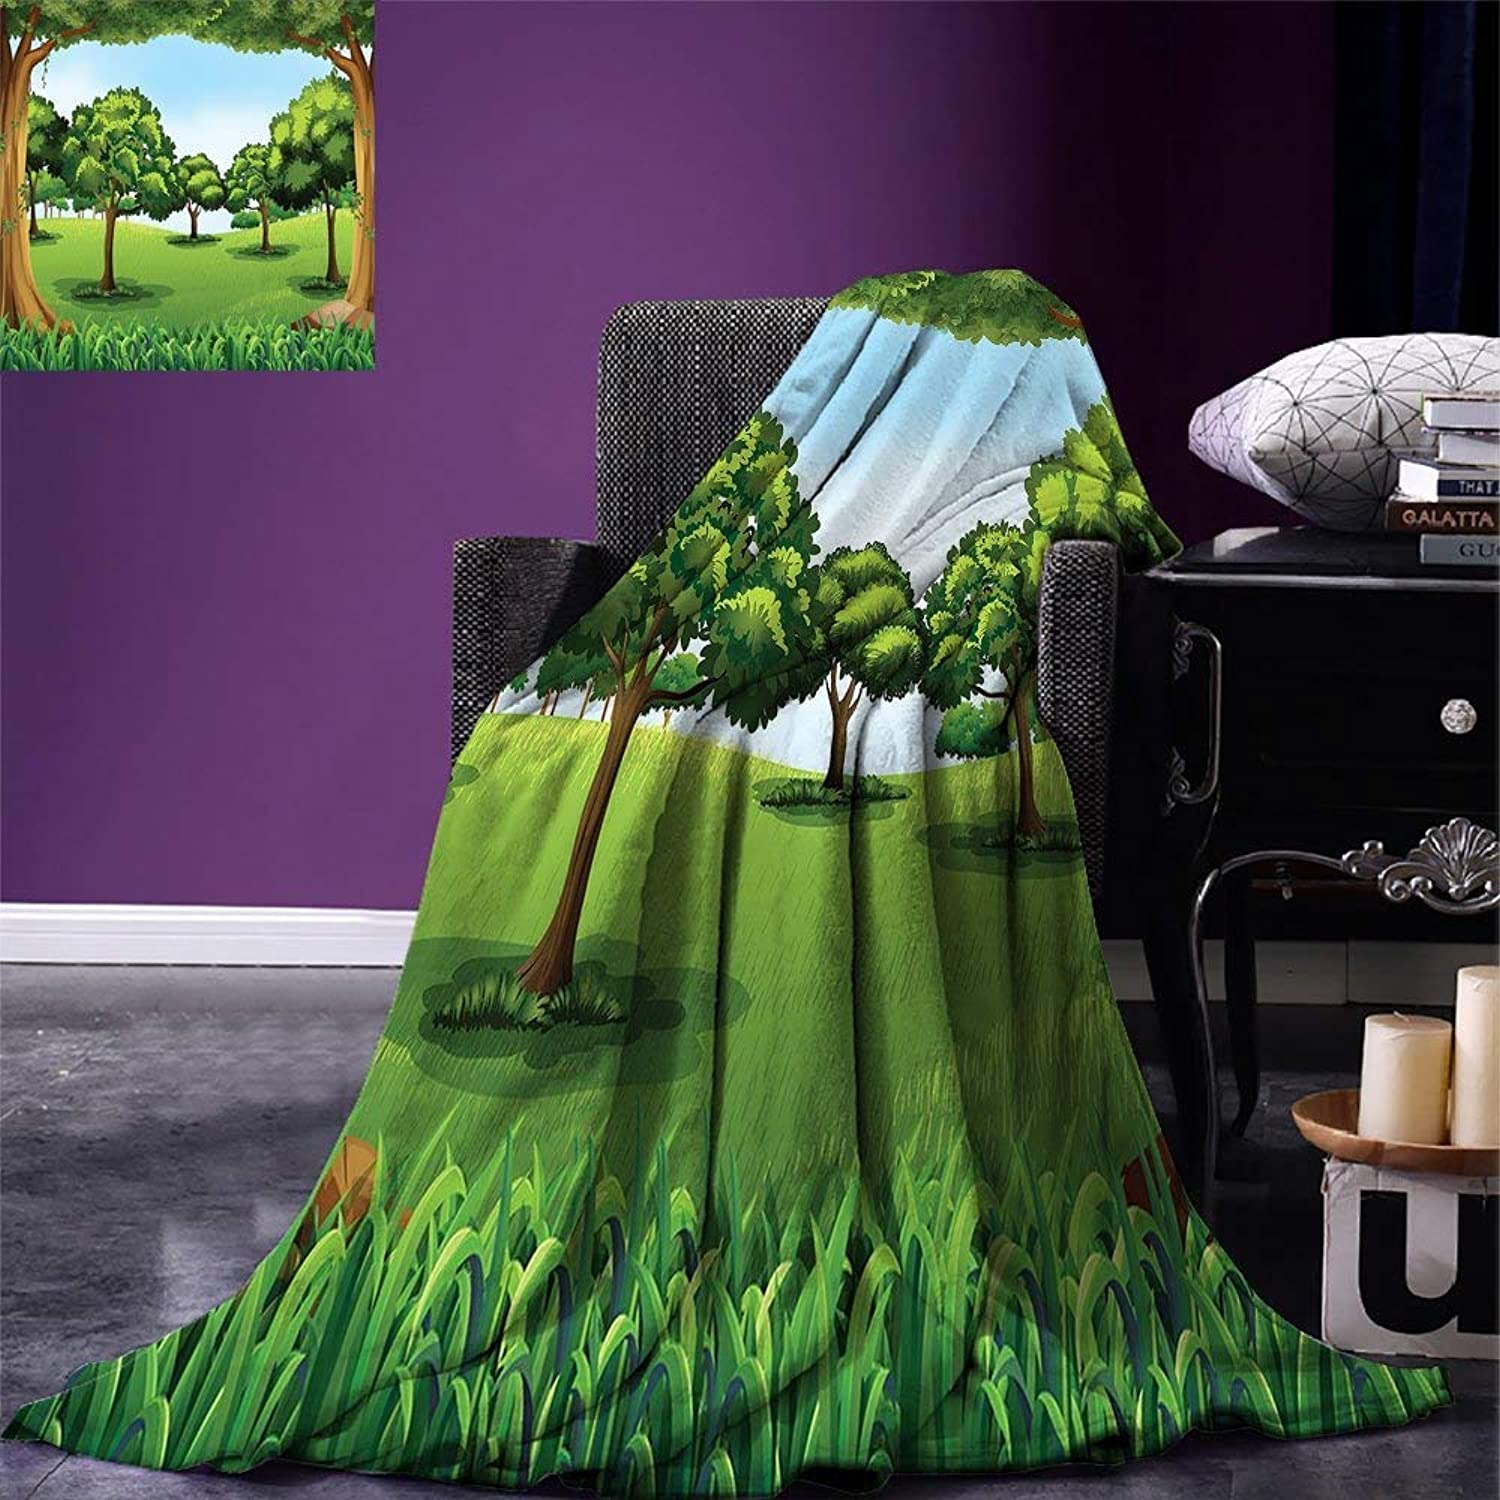 LONSANT Forest Throw Blanket A Clear Day in The Woods Theme Cartoon Drawing Style Idyllic Summer Velvet Plush Throw Blanket Green Pale bluee Caramel,Fashion Blanket